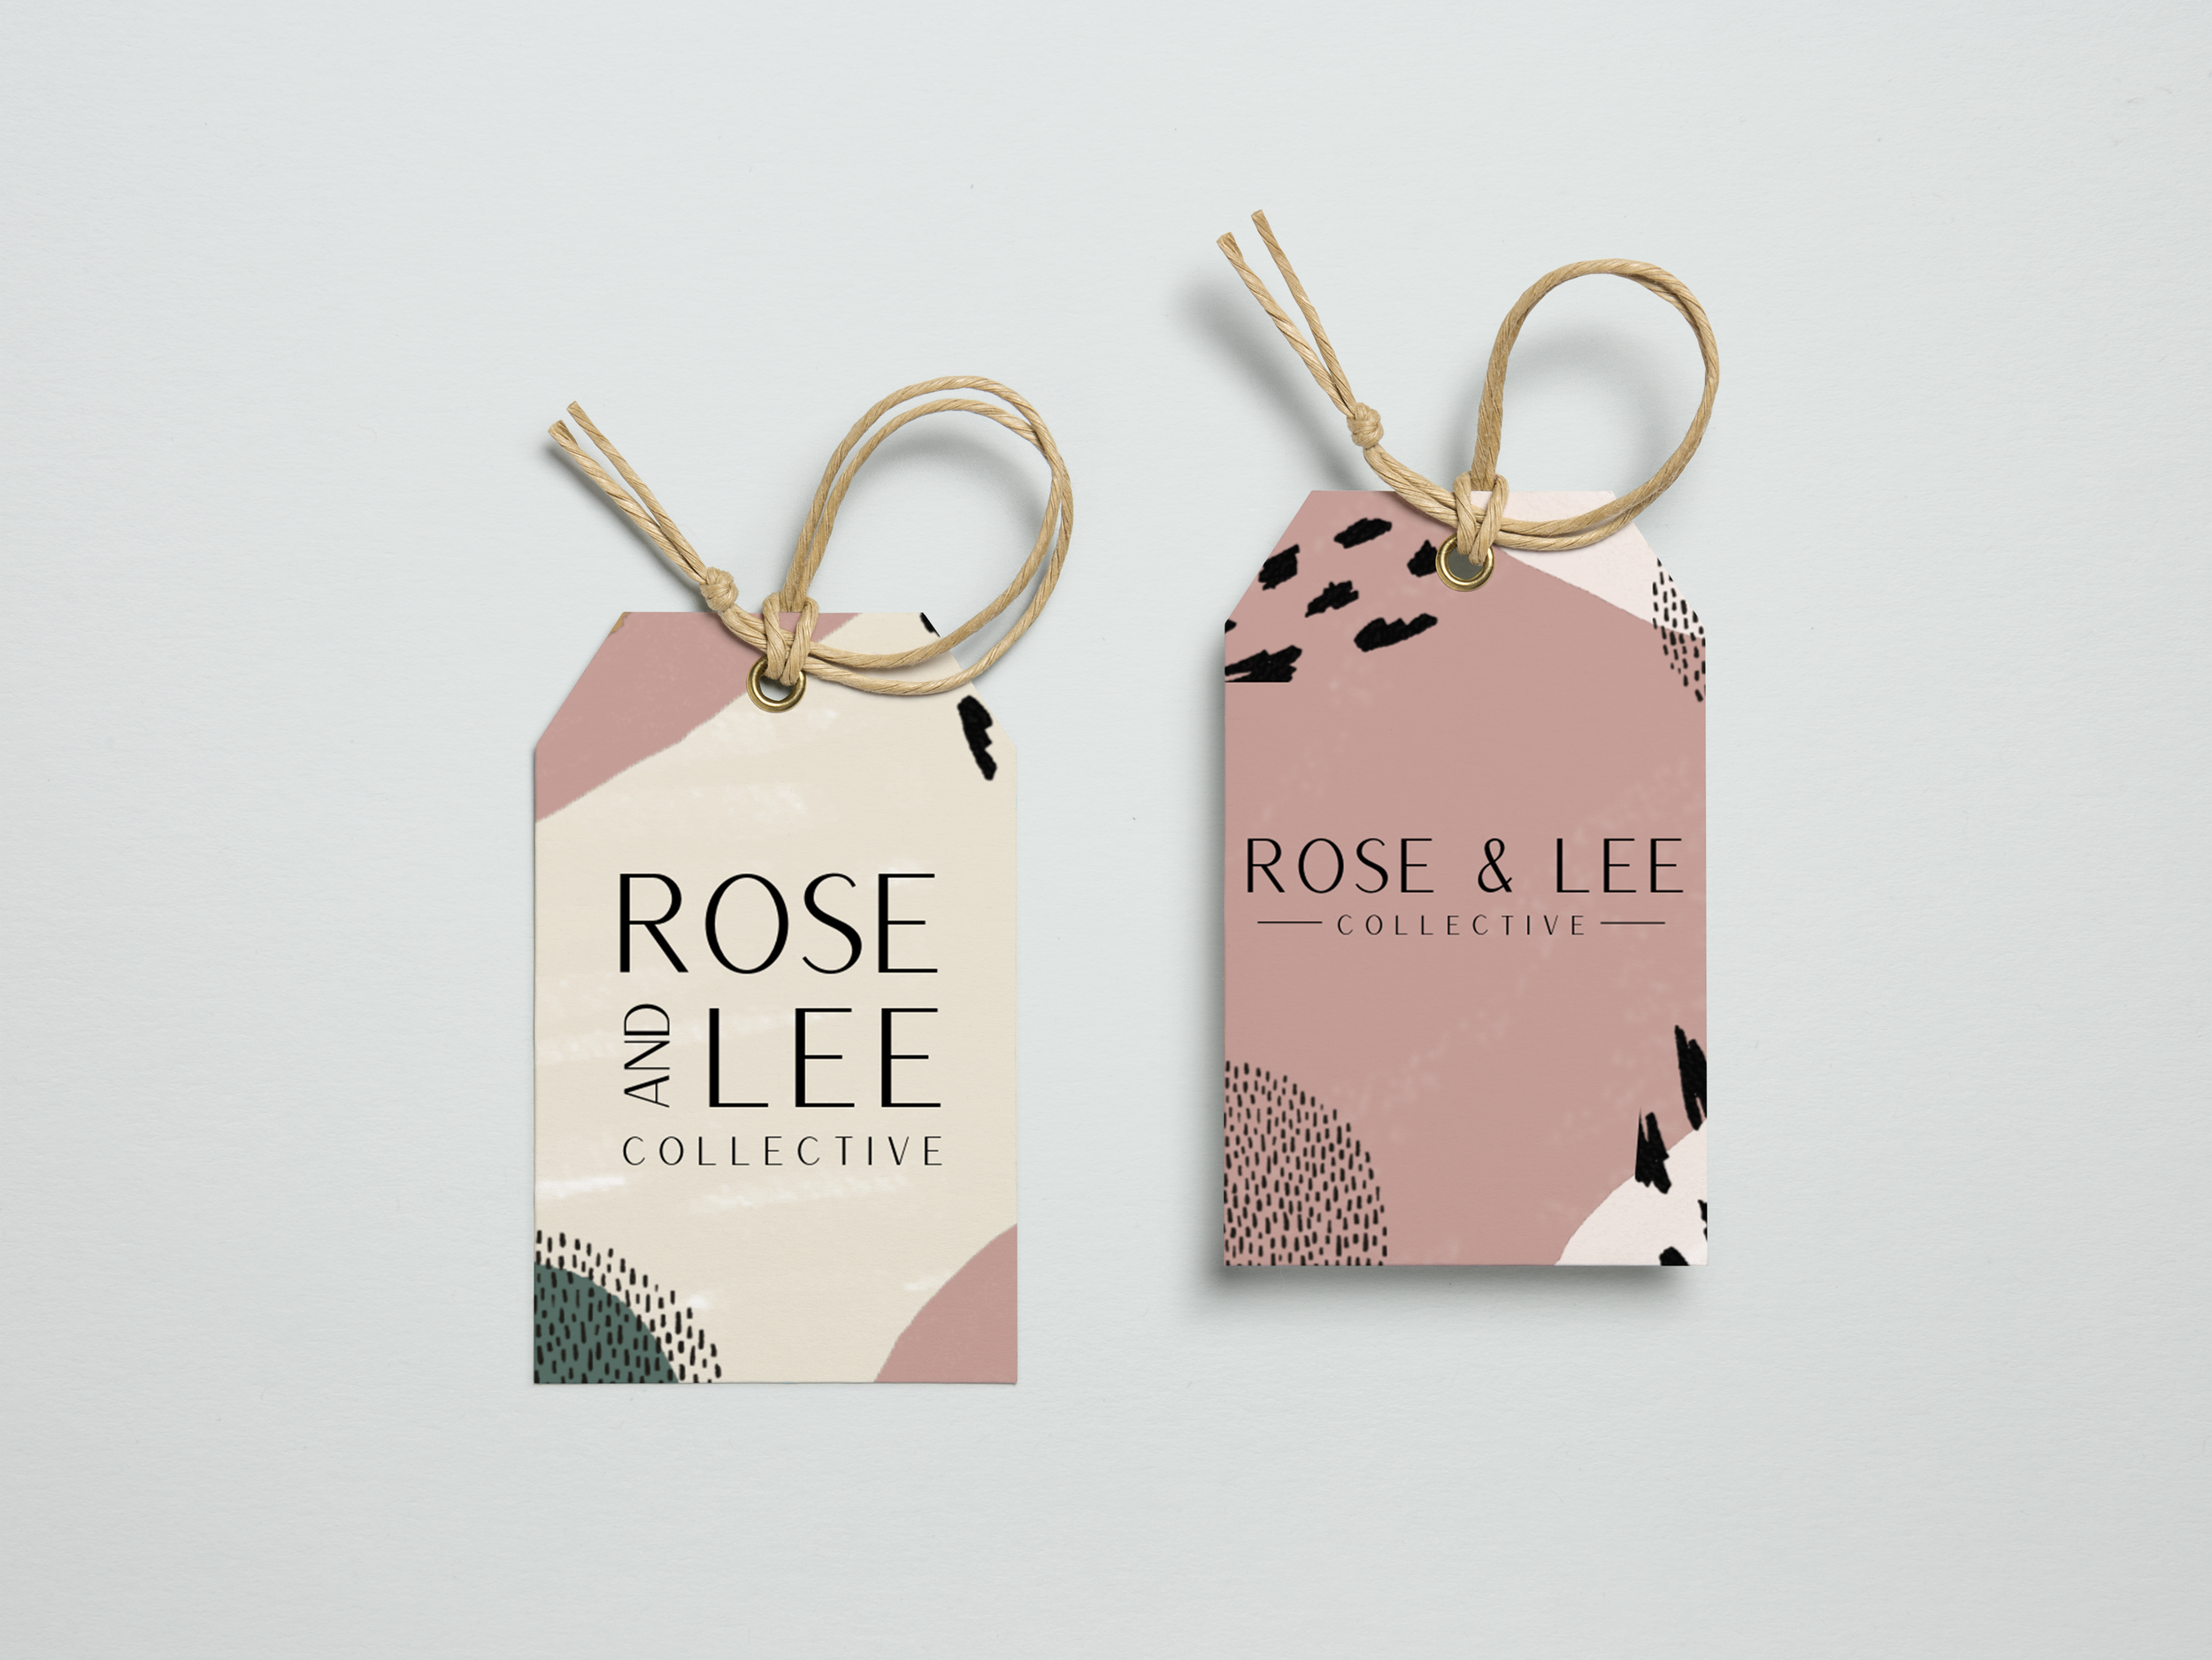 ROSE & LEE COLLECTIVE